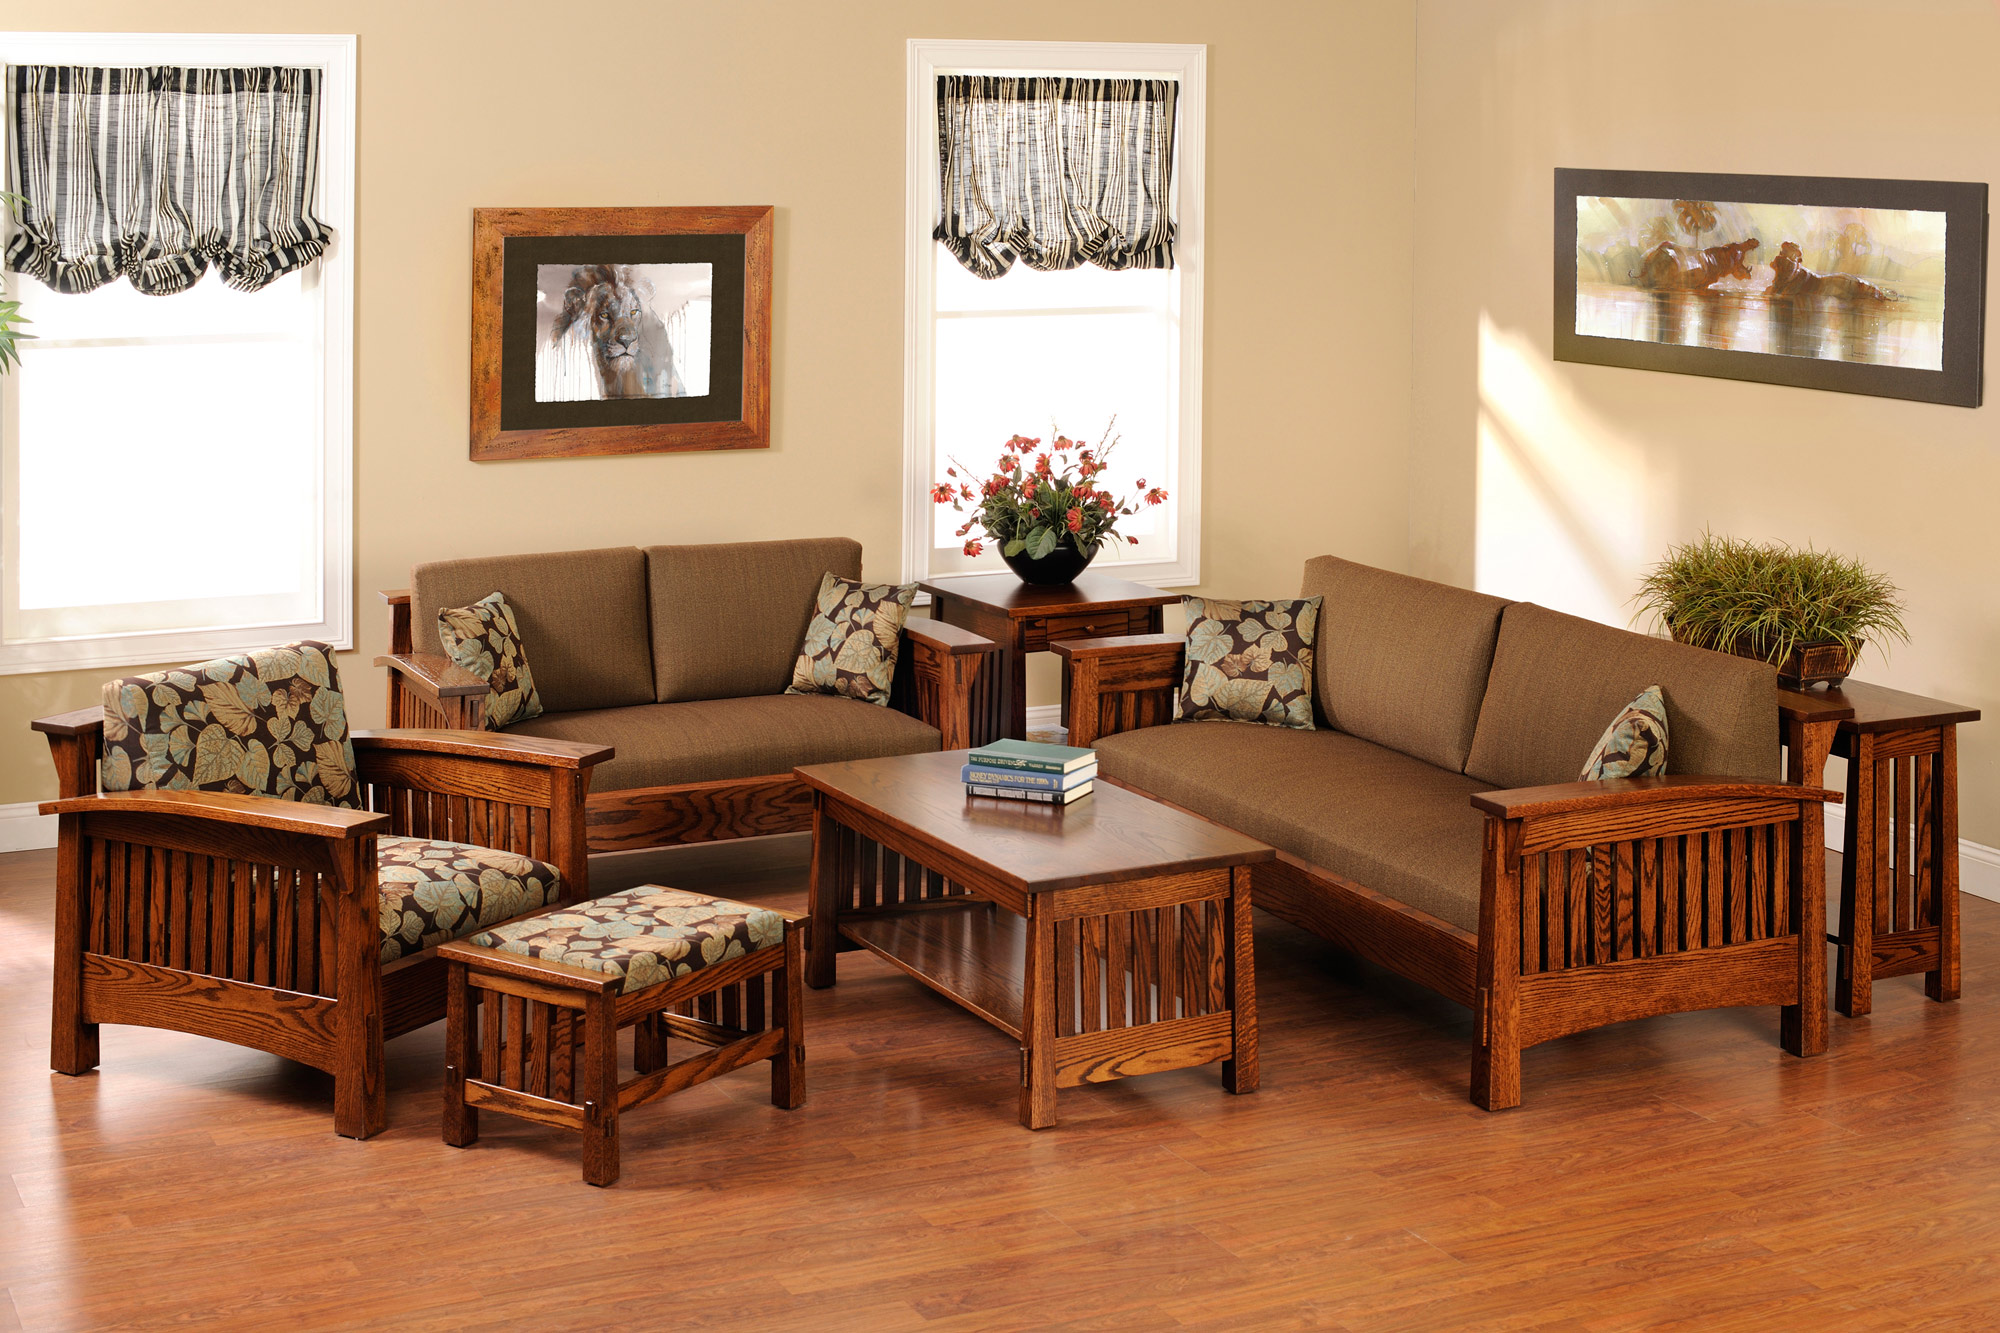 Dazzling front room furnishings for living room ideas with front room furnishings outlet